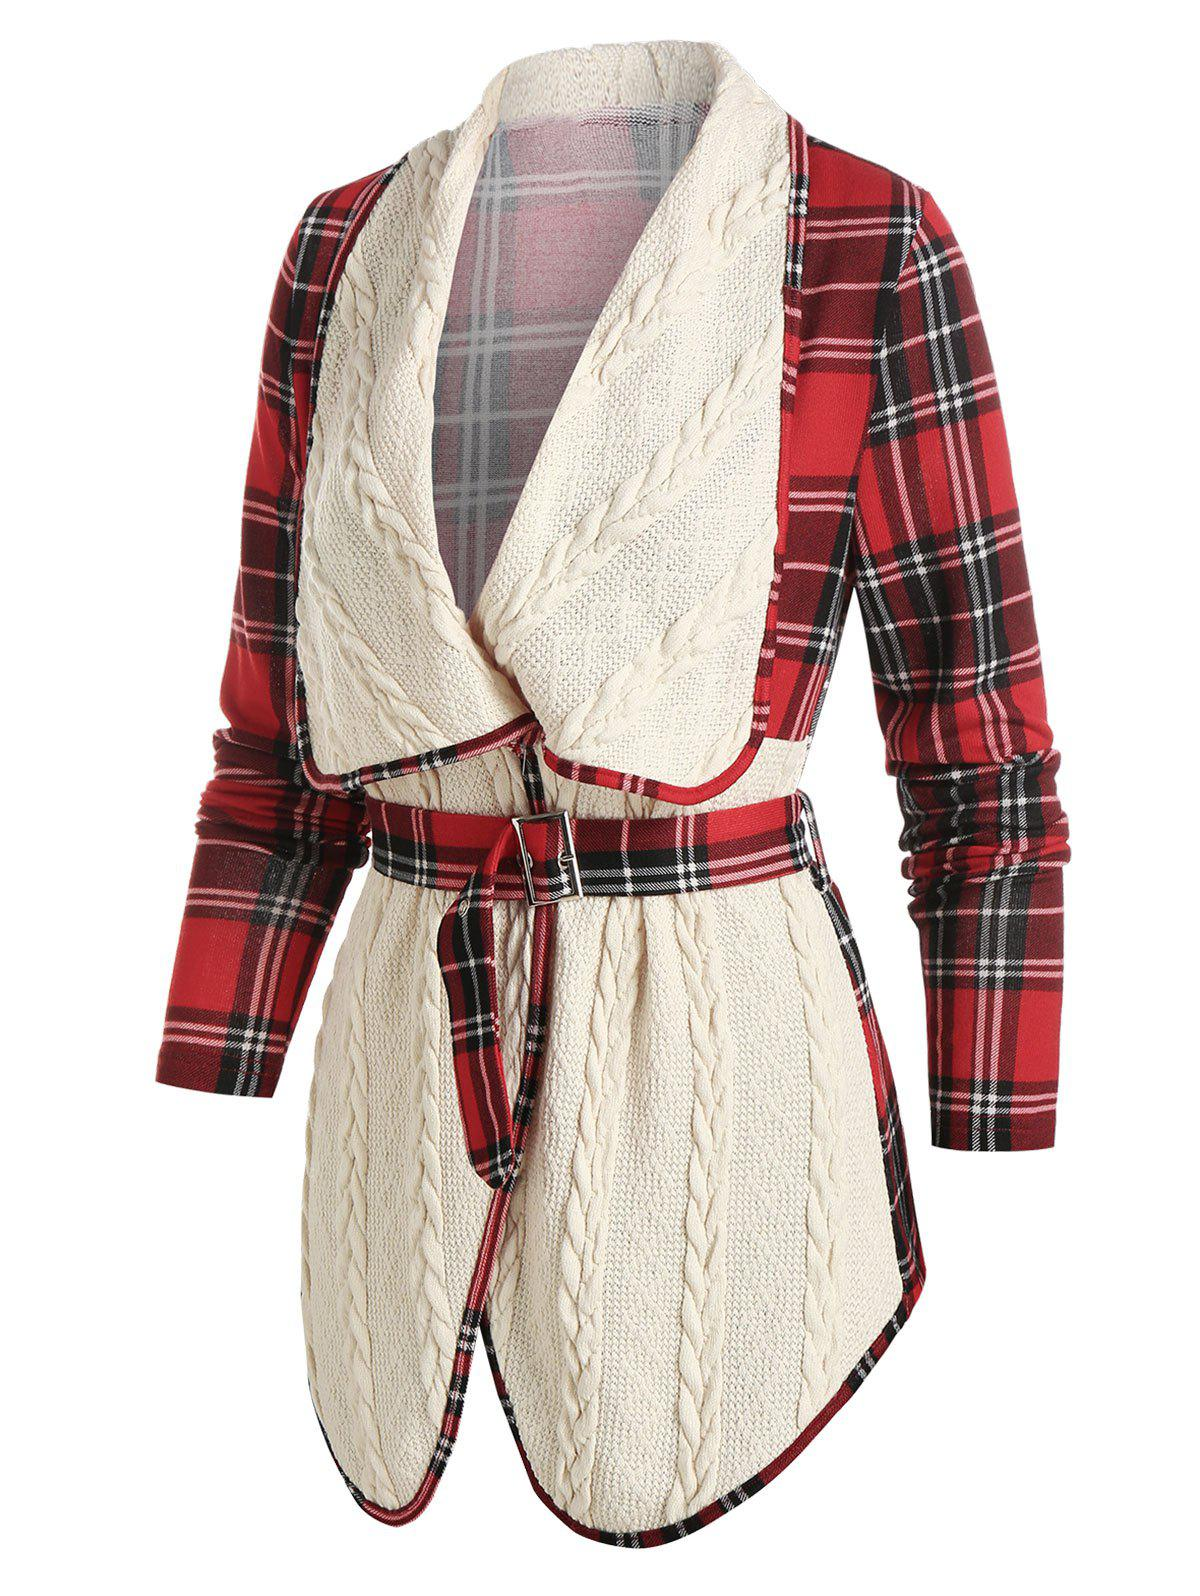 New Plaid Print Belted Cable Knit Jacket